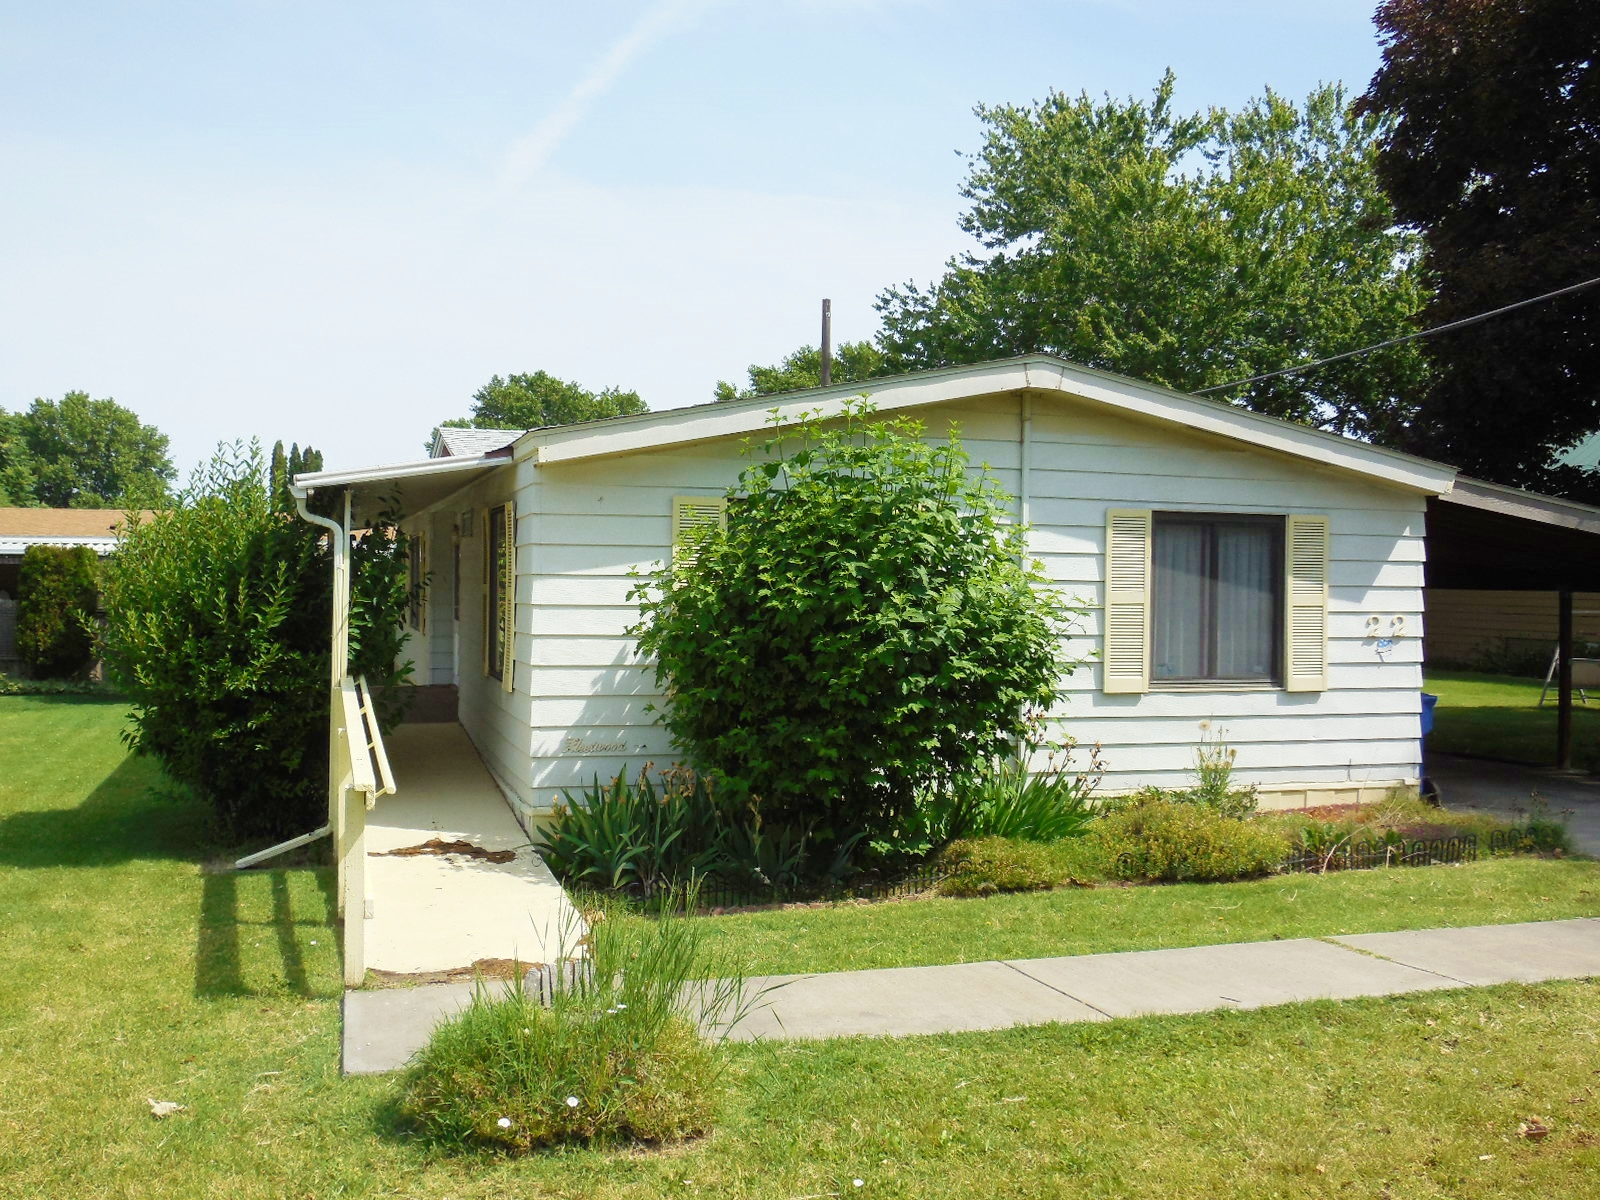 3 Bedroom 2 Bathroom In A 55 Mobile Home Park 22500